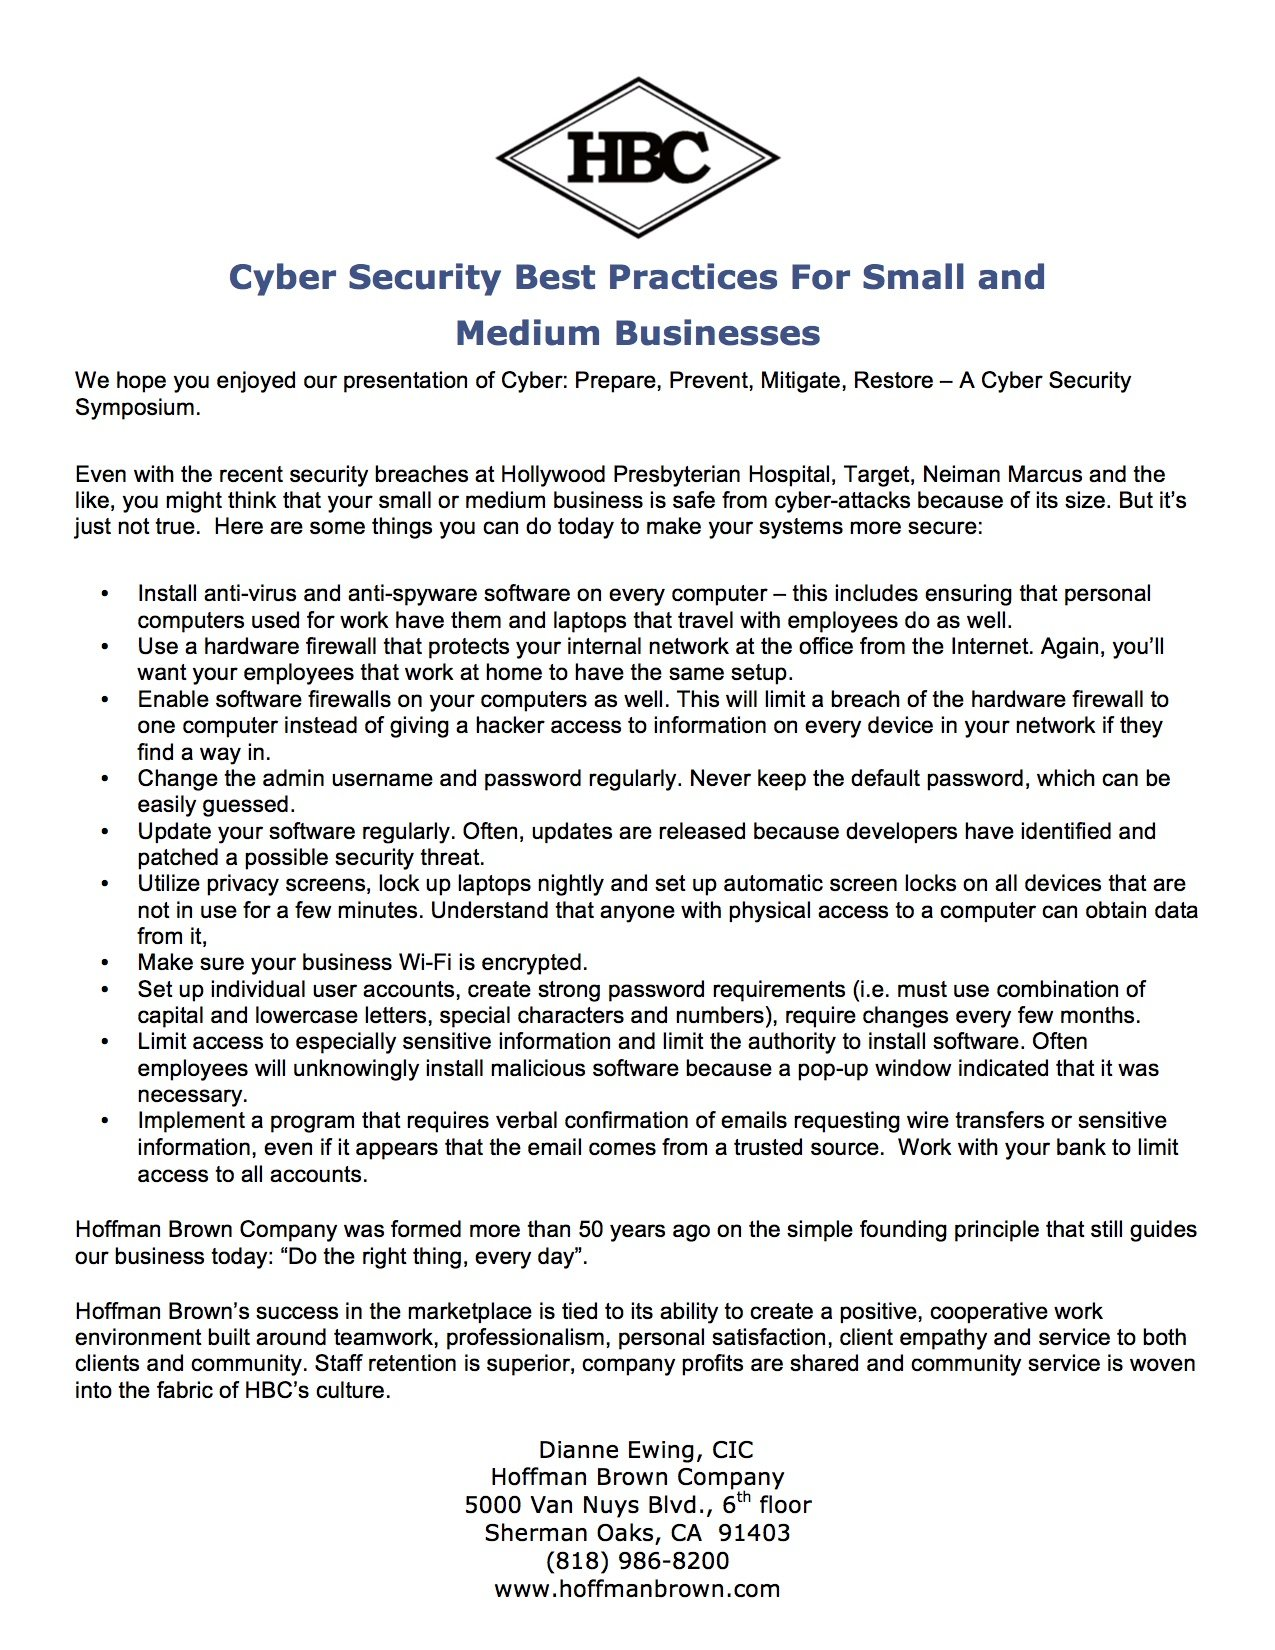 Cyber Security Best Practices copy